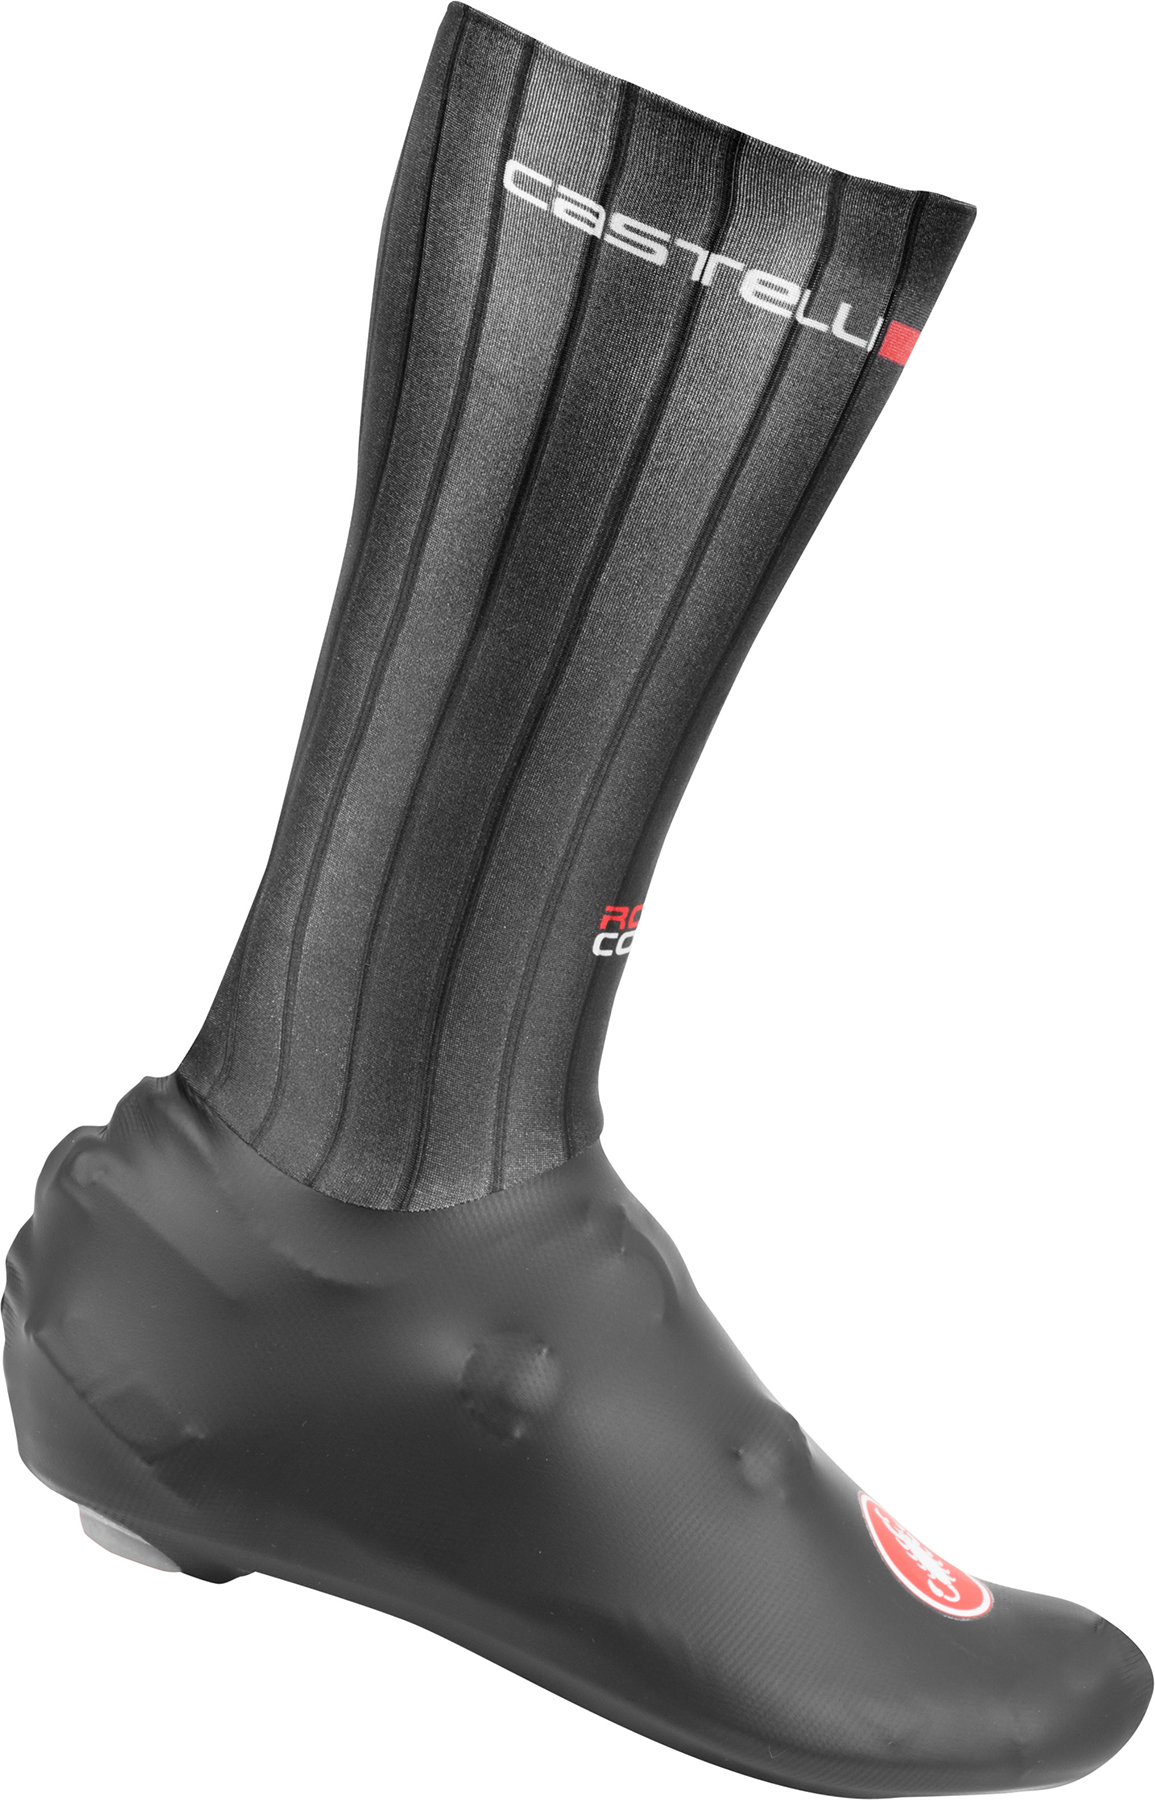 Castelli Fast Feet TT Shoecover | shoecovers_clothes